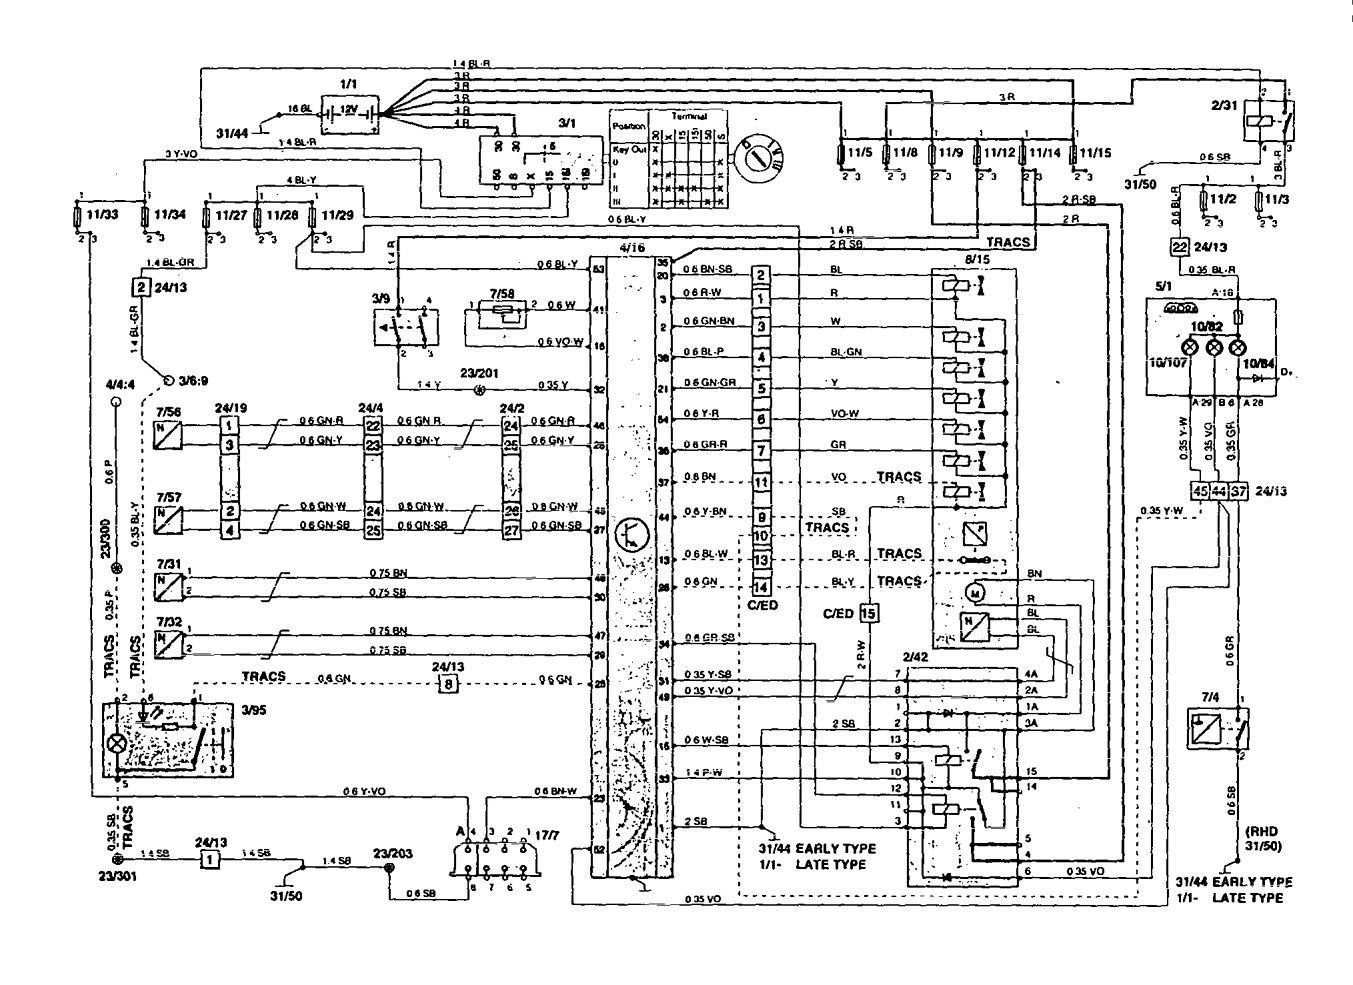 hight resolution of volvo 850 wiring diagram wiring diagram 1997 volvo 850 wiring diagram volvo 850 engine diagram